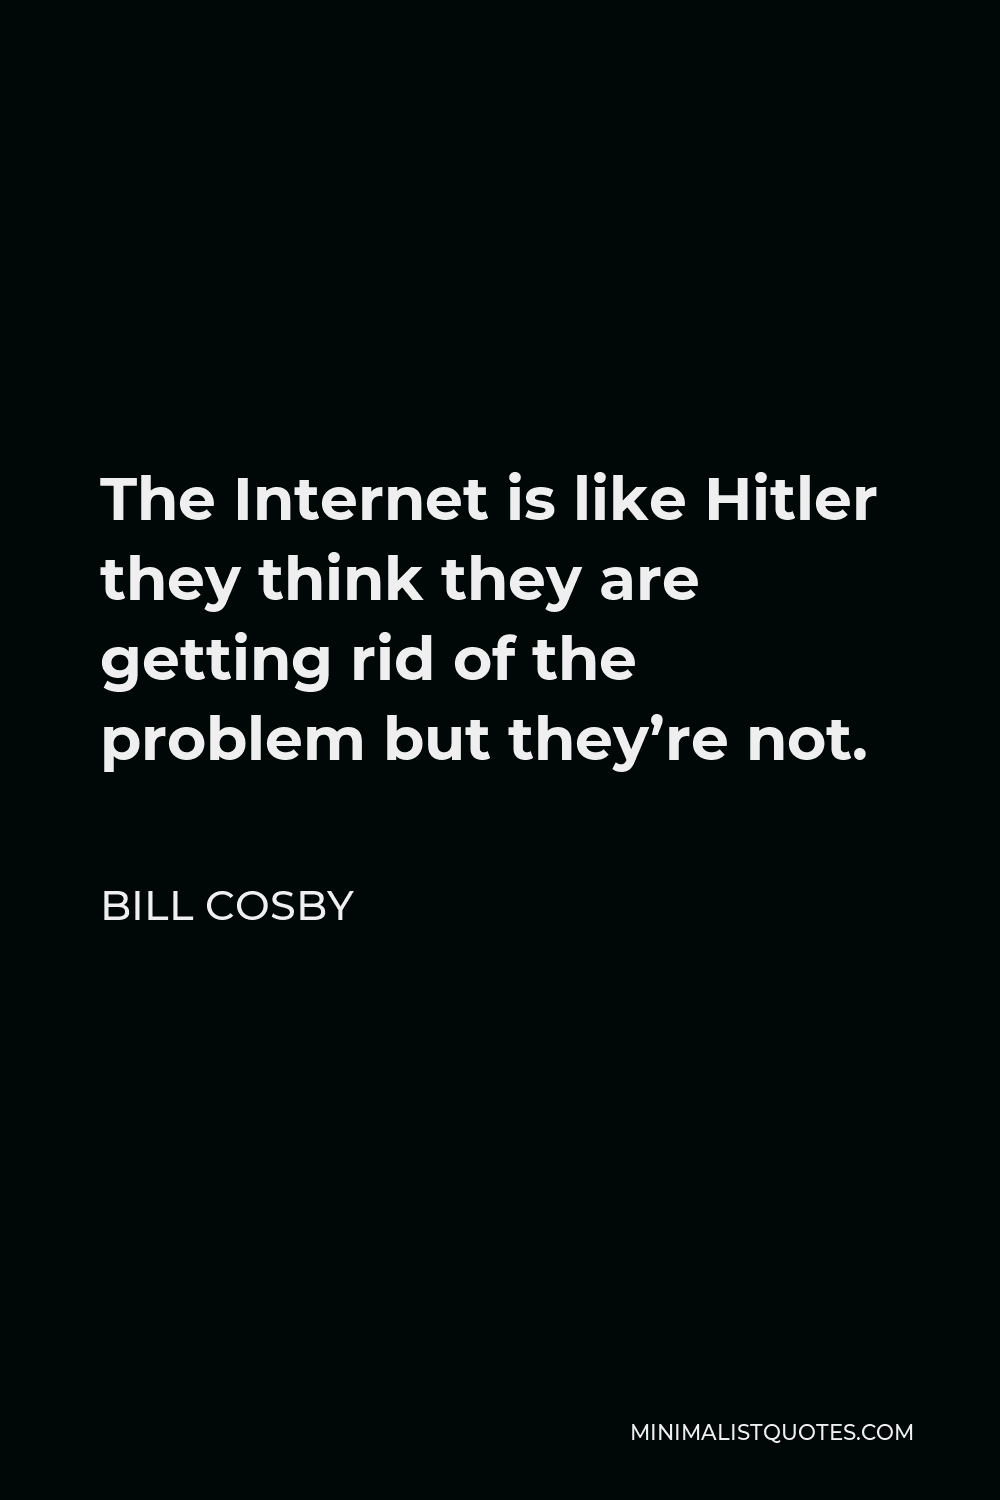 Bill Cosby Quote - The Internet is like Hitler they think they are getting rid of the problem but they're not.